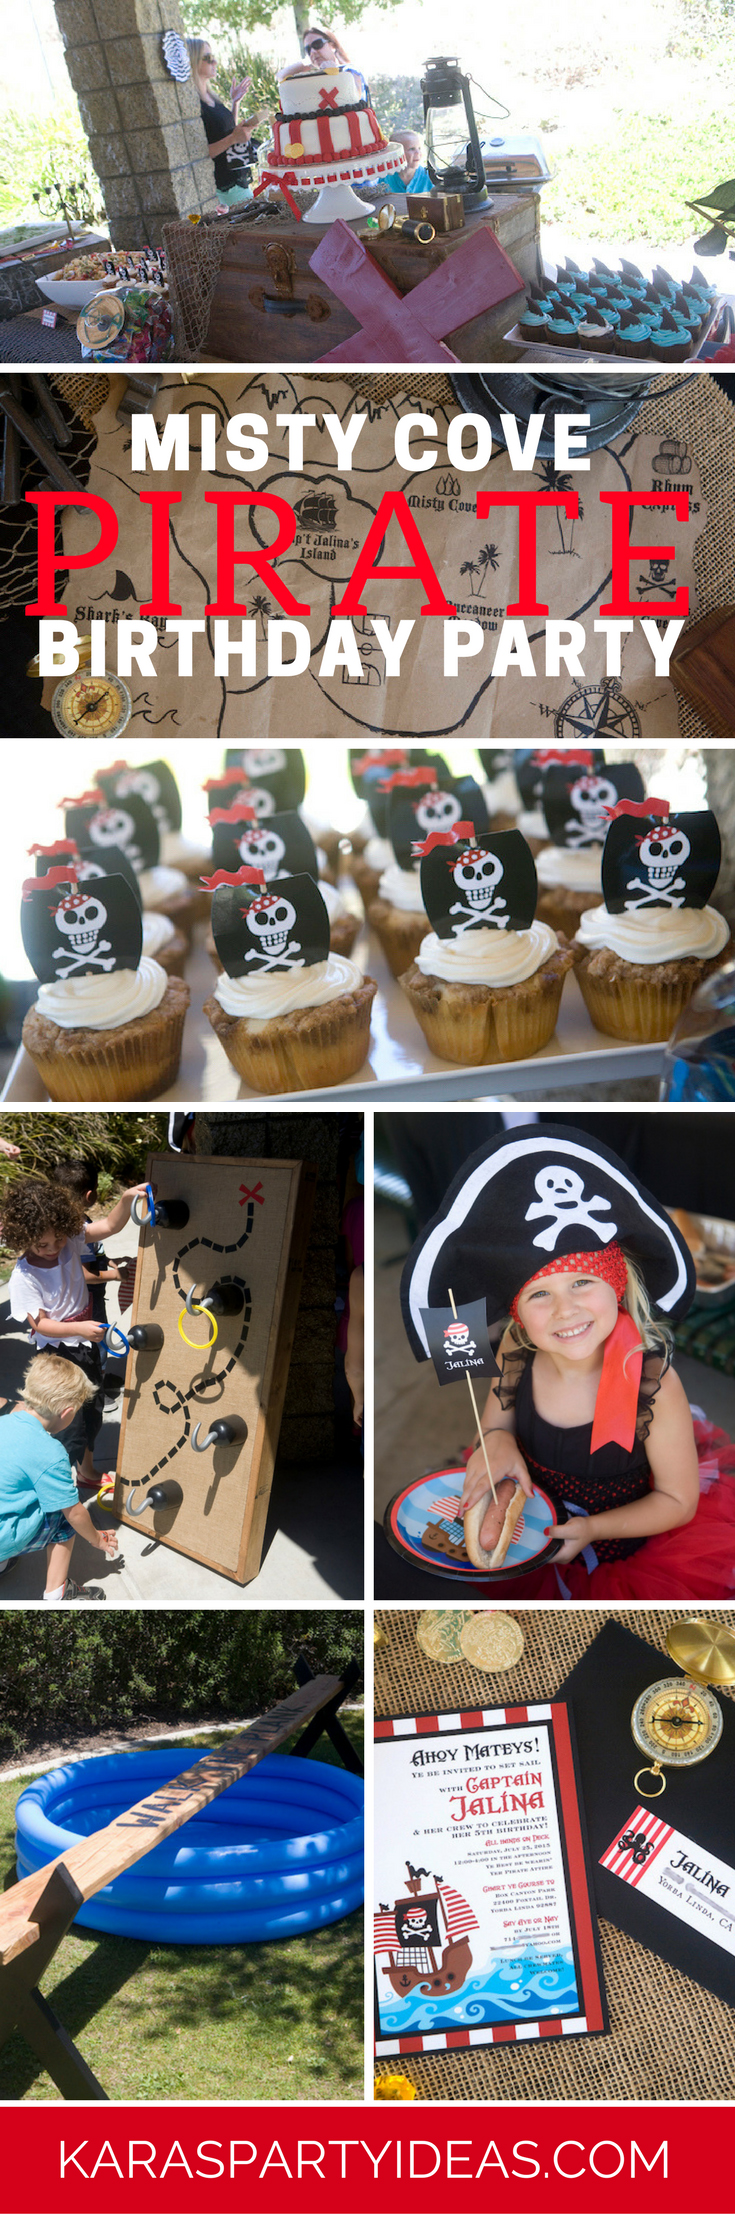 Misty Cove Pirate Birthday Party via Kara's Party Ideas - KarasPartyIdeas.com